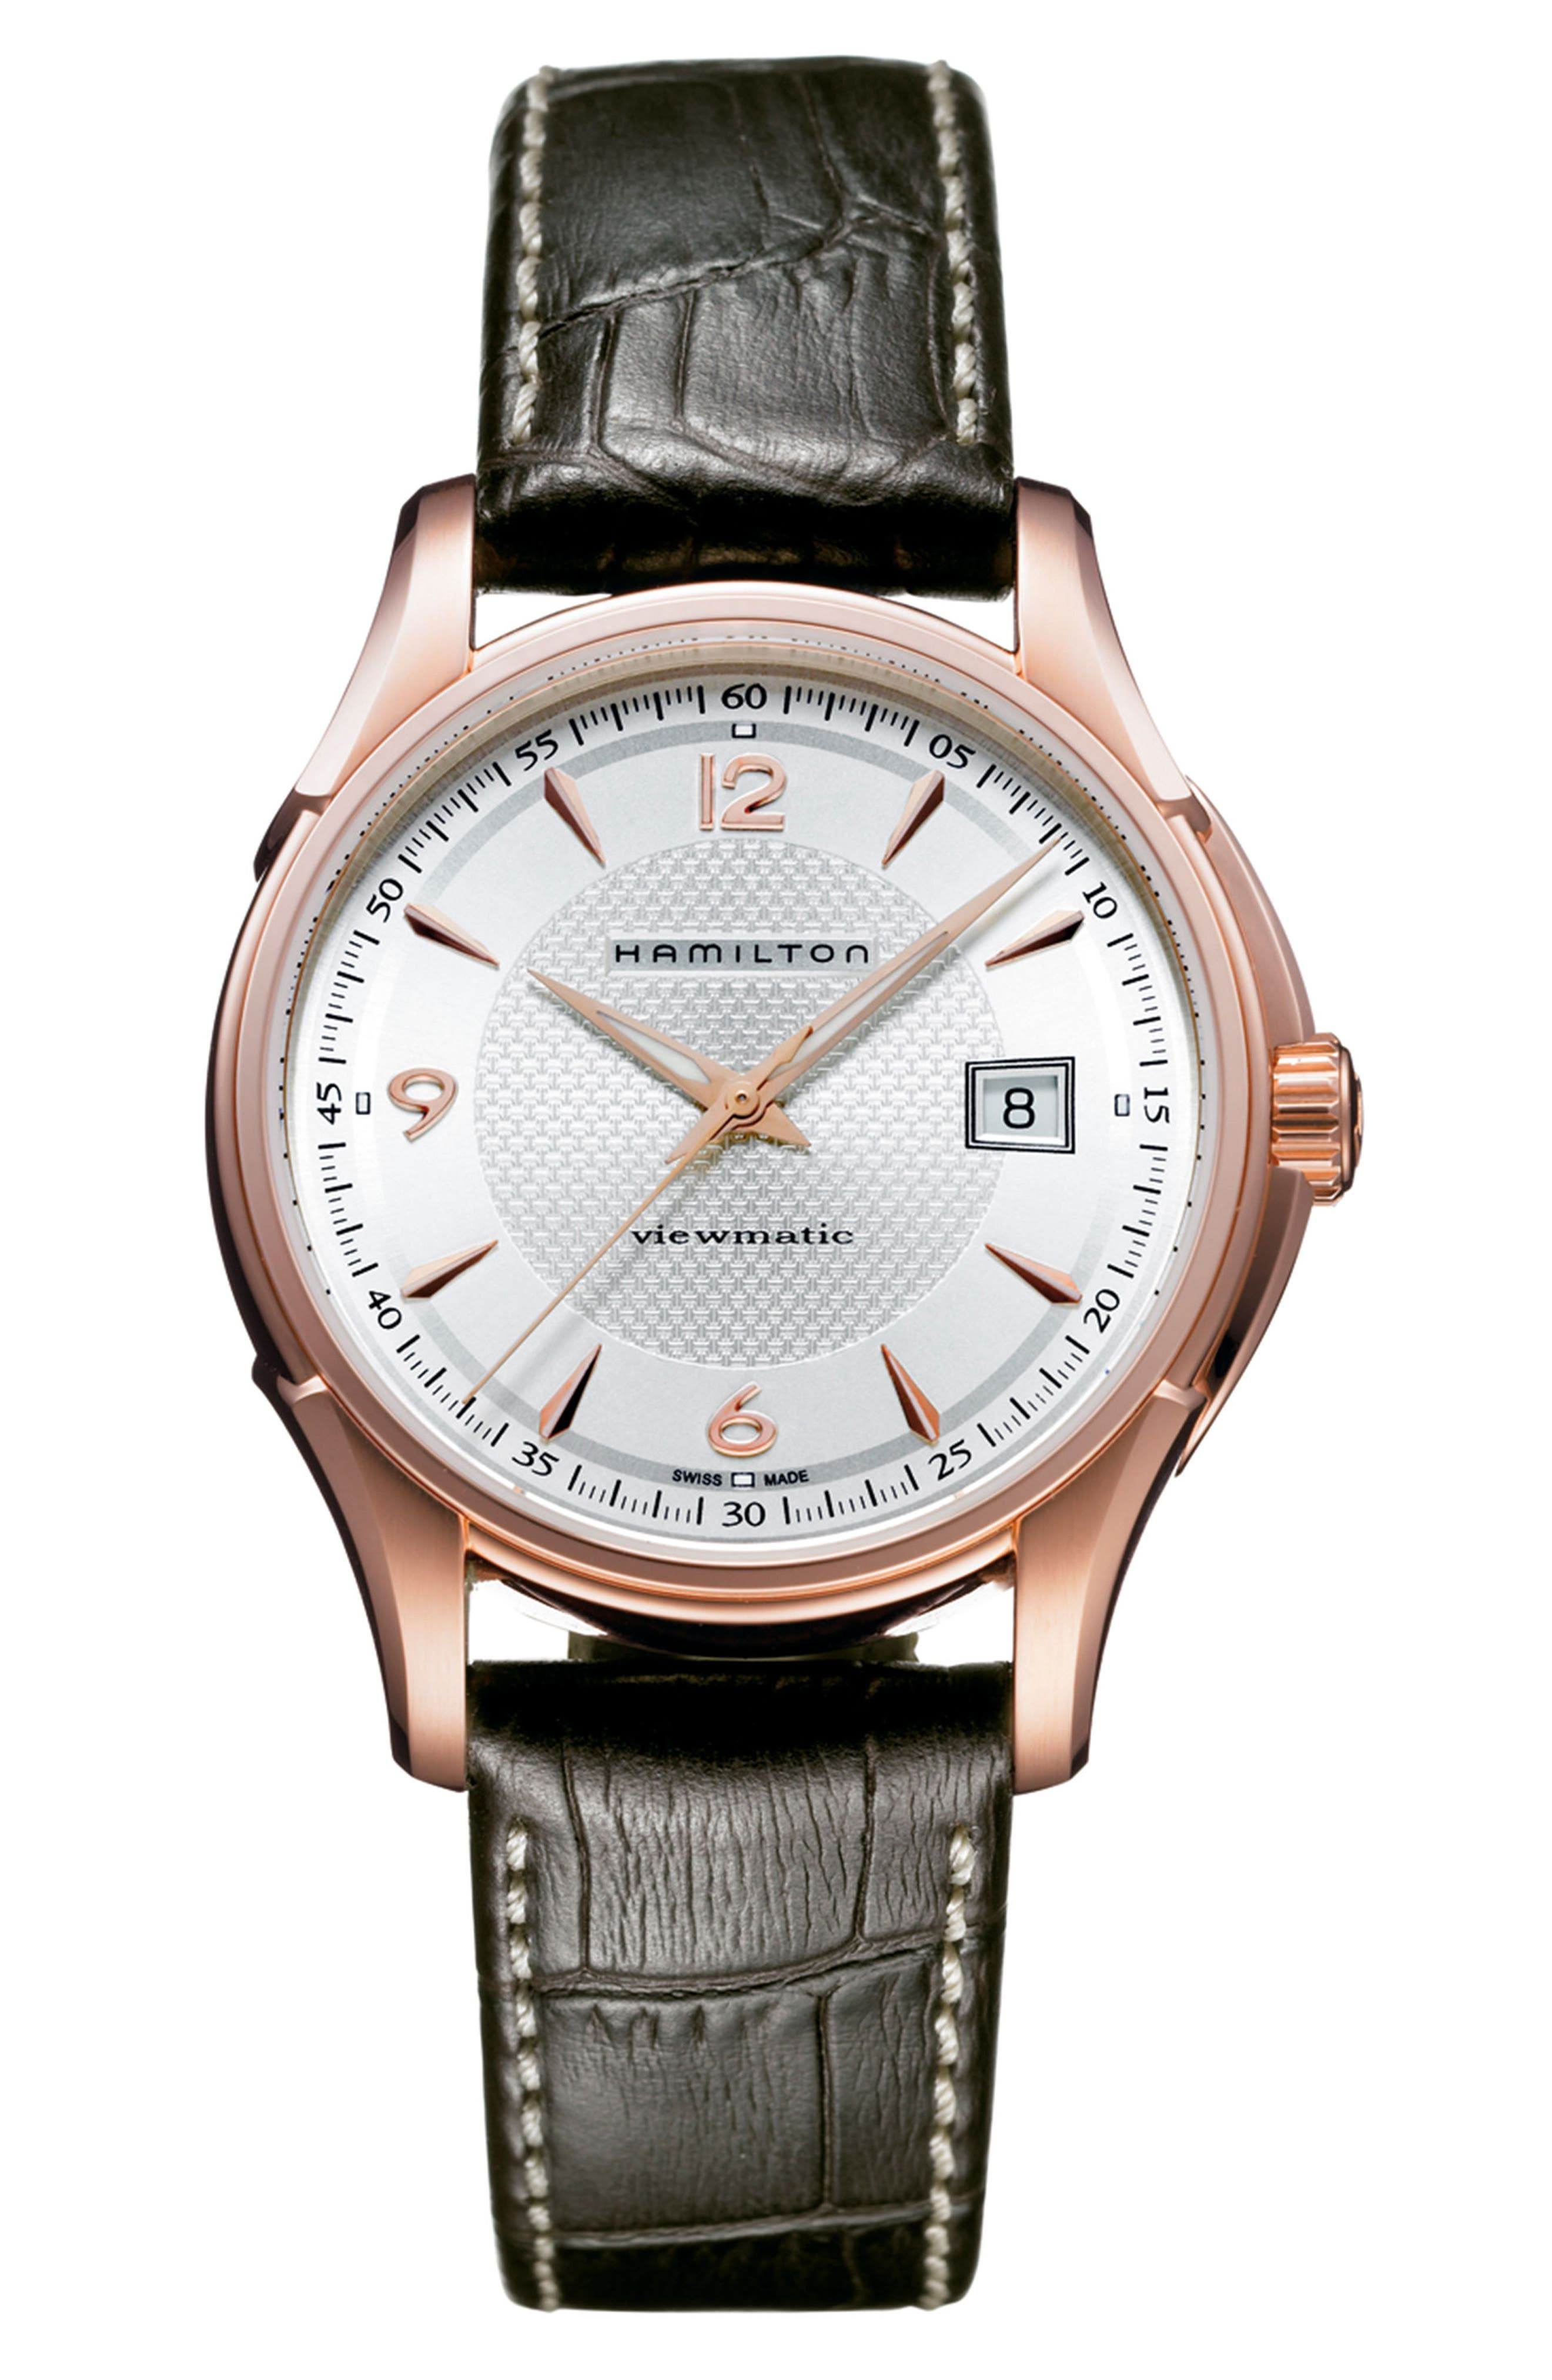 Main Image - Hamilton Jazzmaster Viewmatic Auto Leather Strap Watch, 40mm